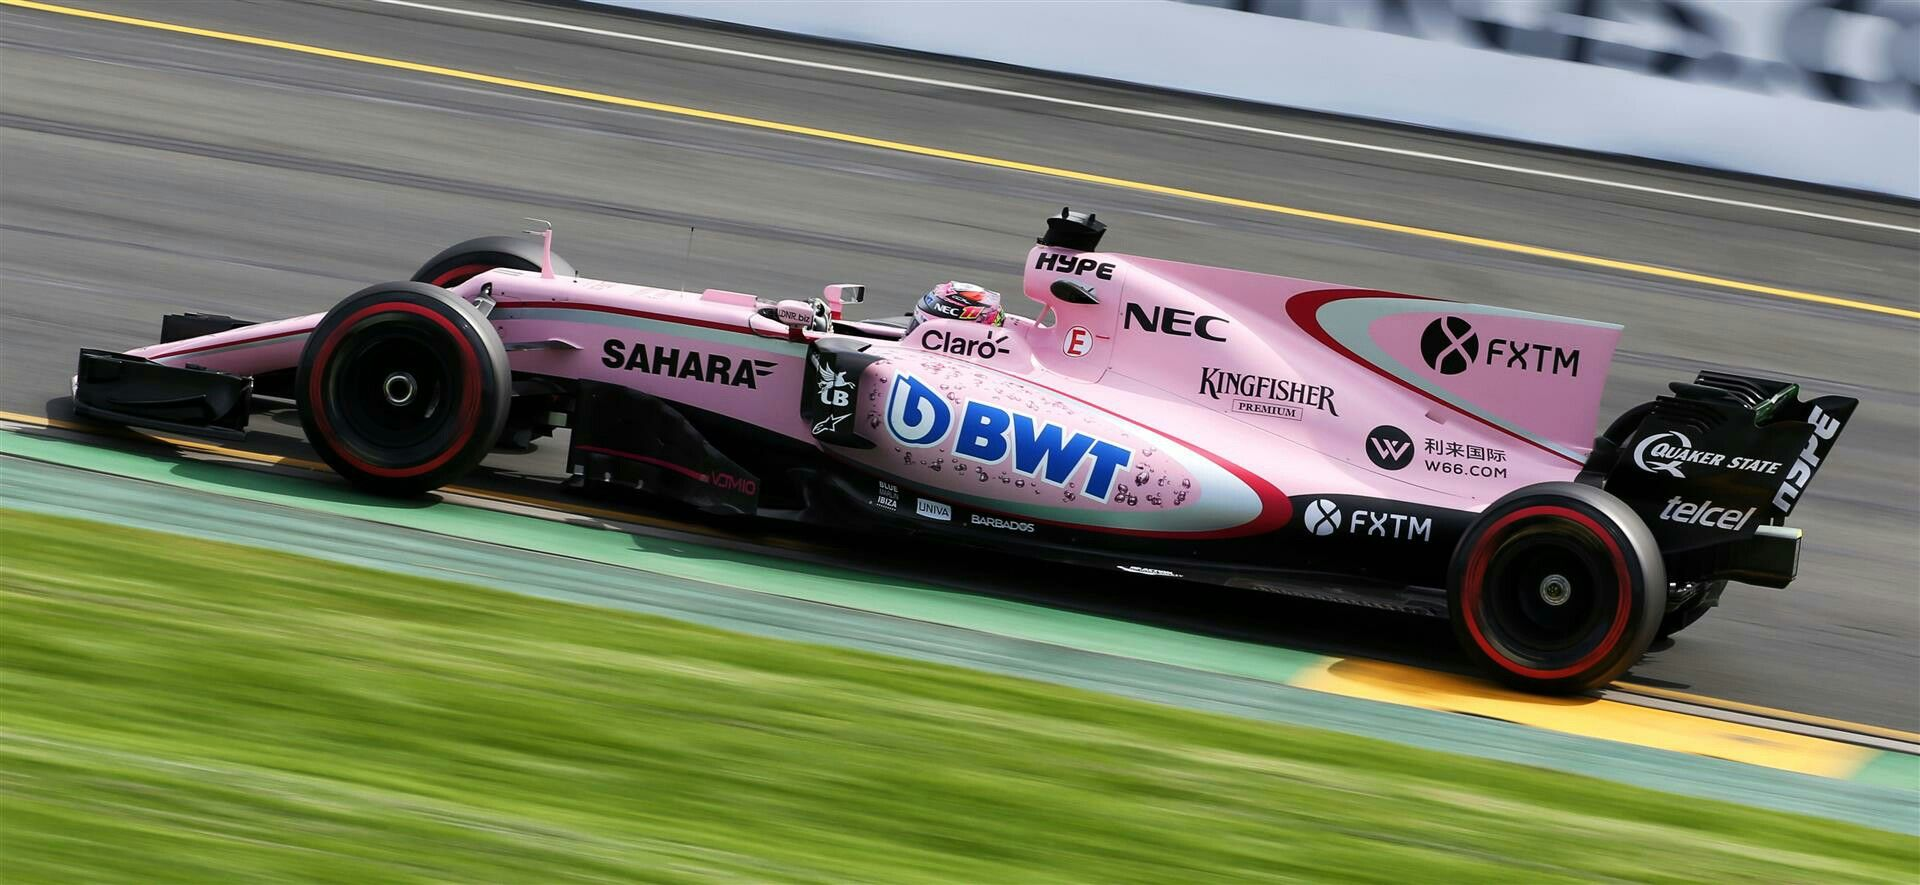 F 1 Season 2017 The First Pink Car Of The History Force India Pink Car Racing Car